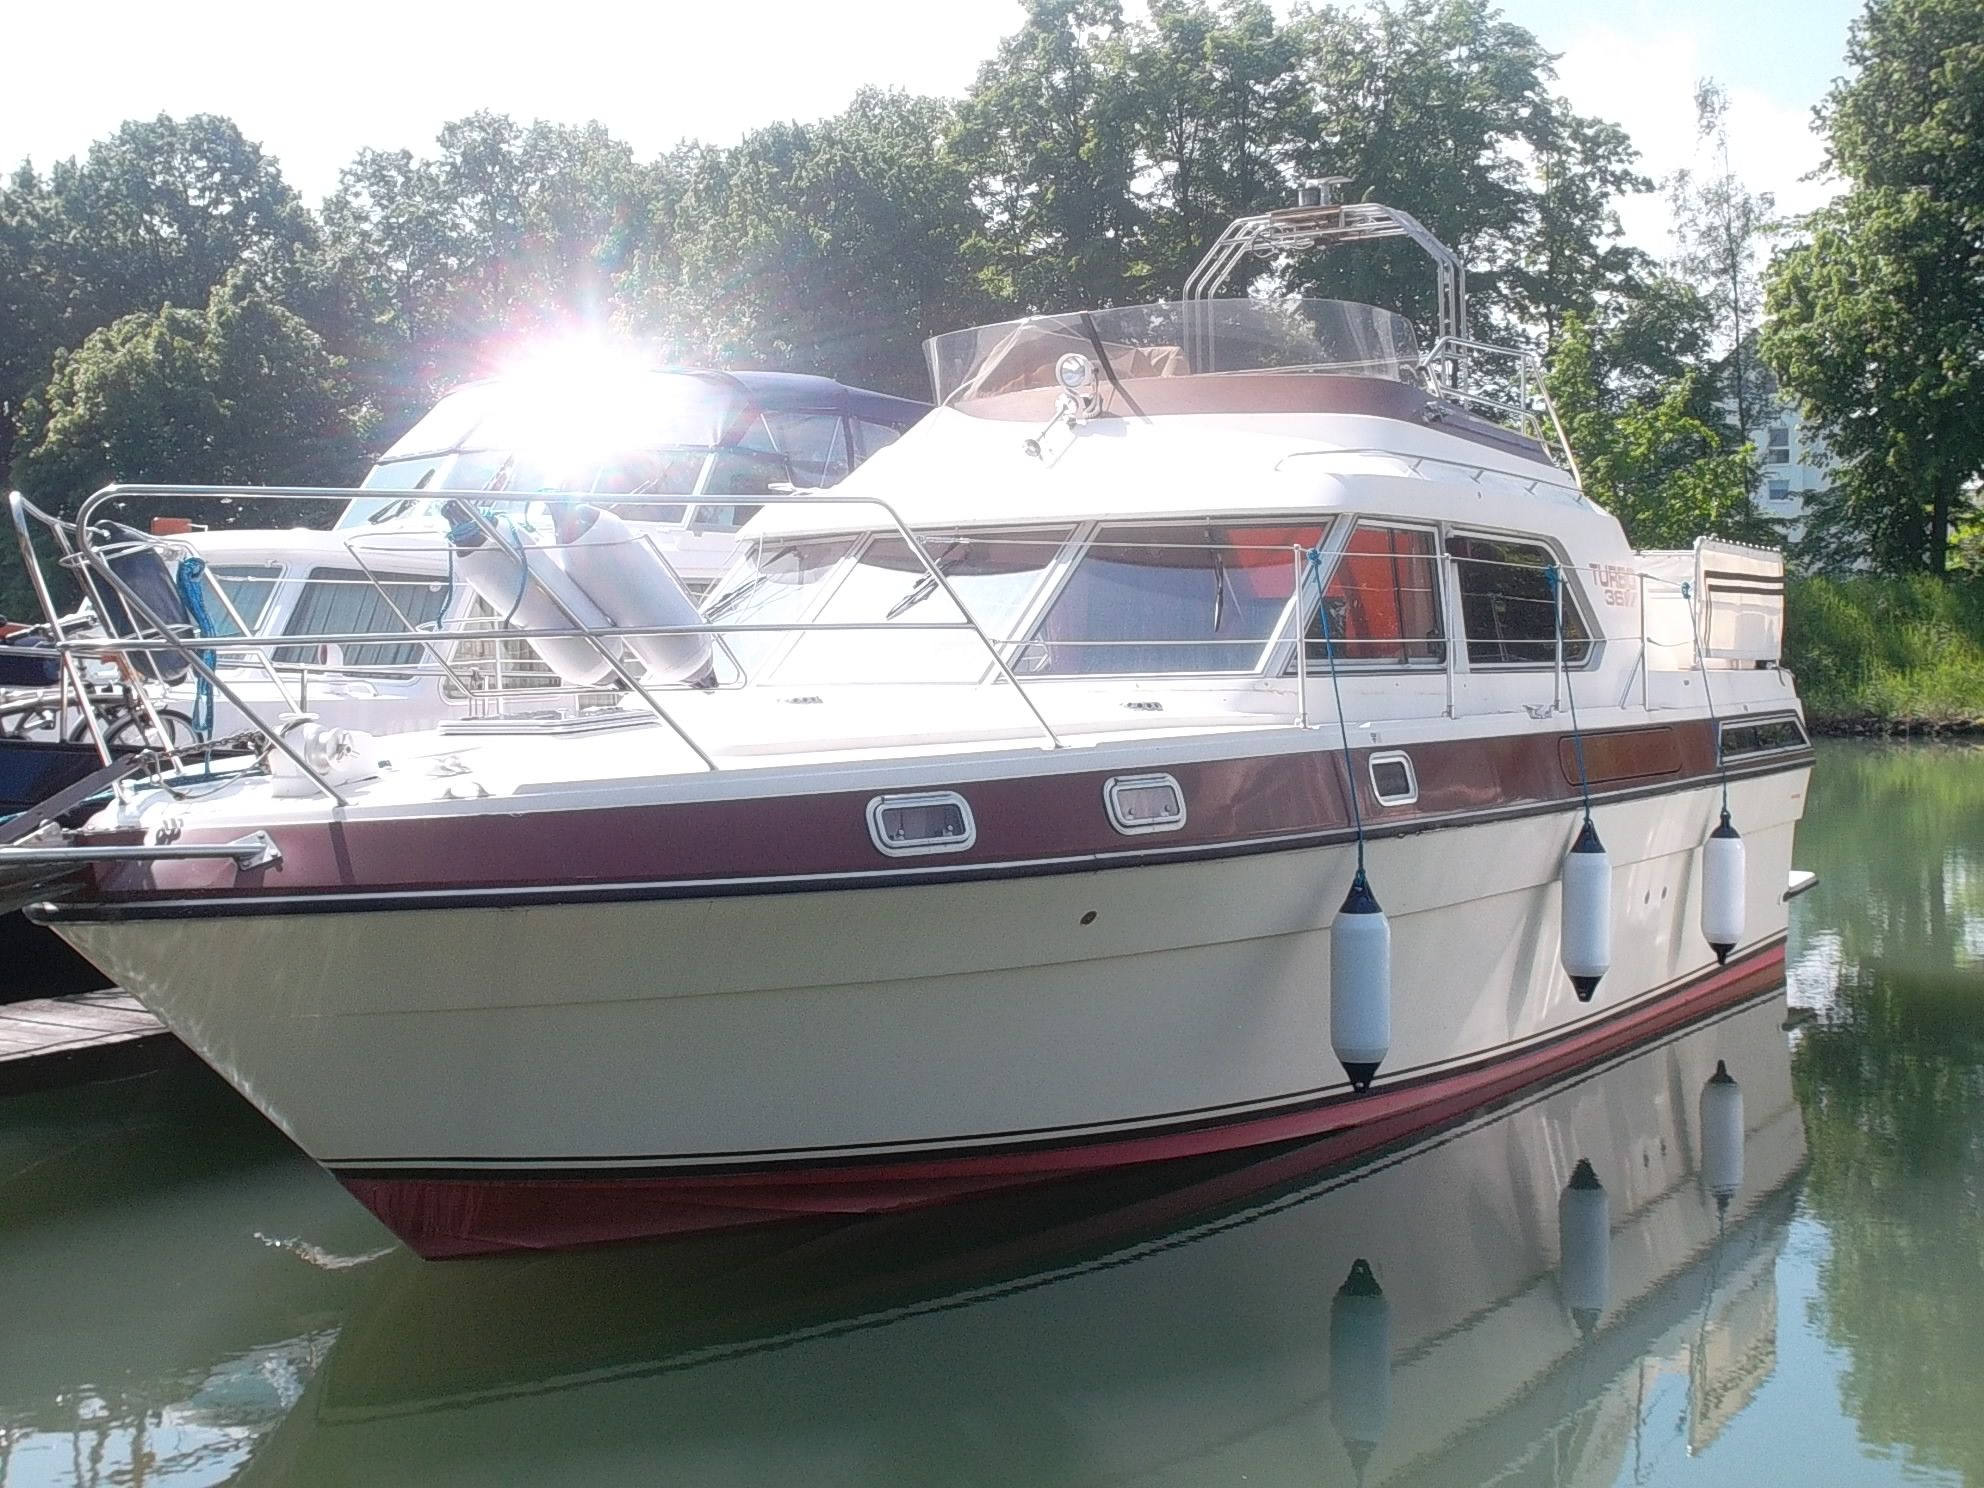 Fairline Fairline 36 Turbo Fly